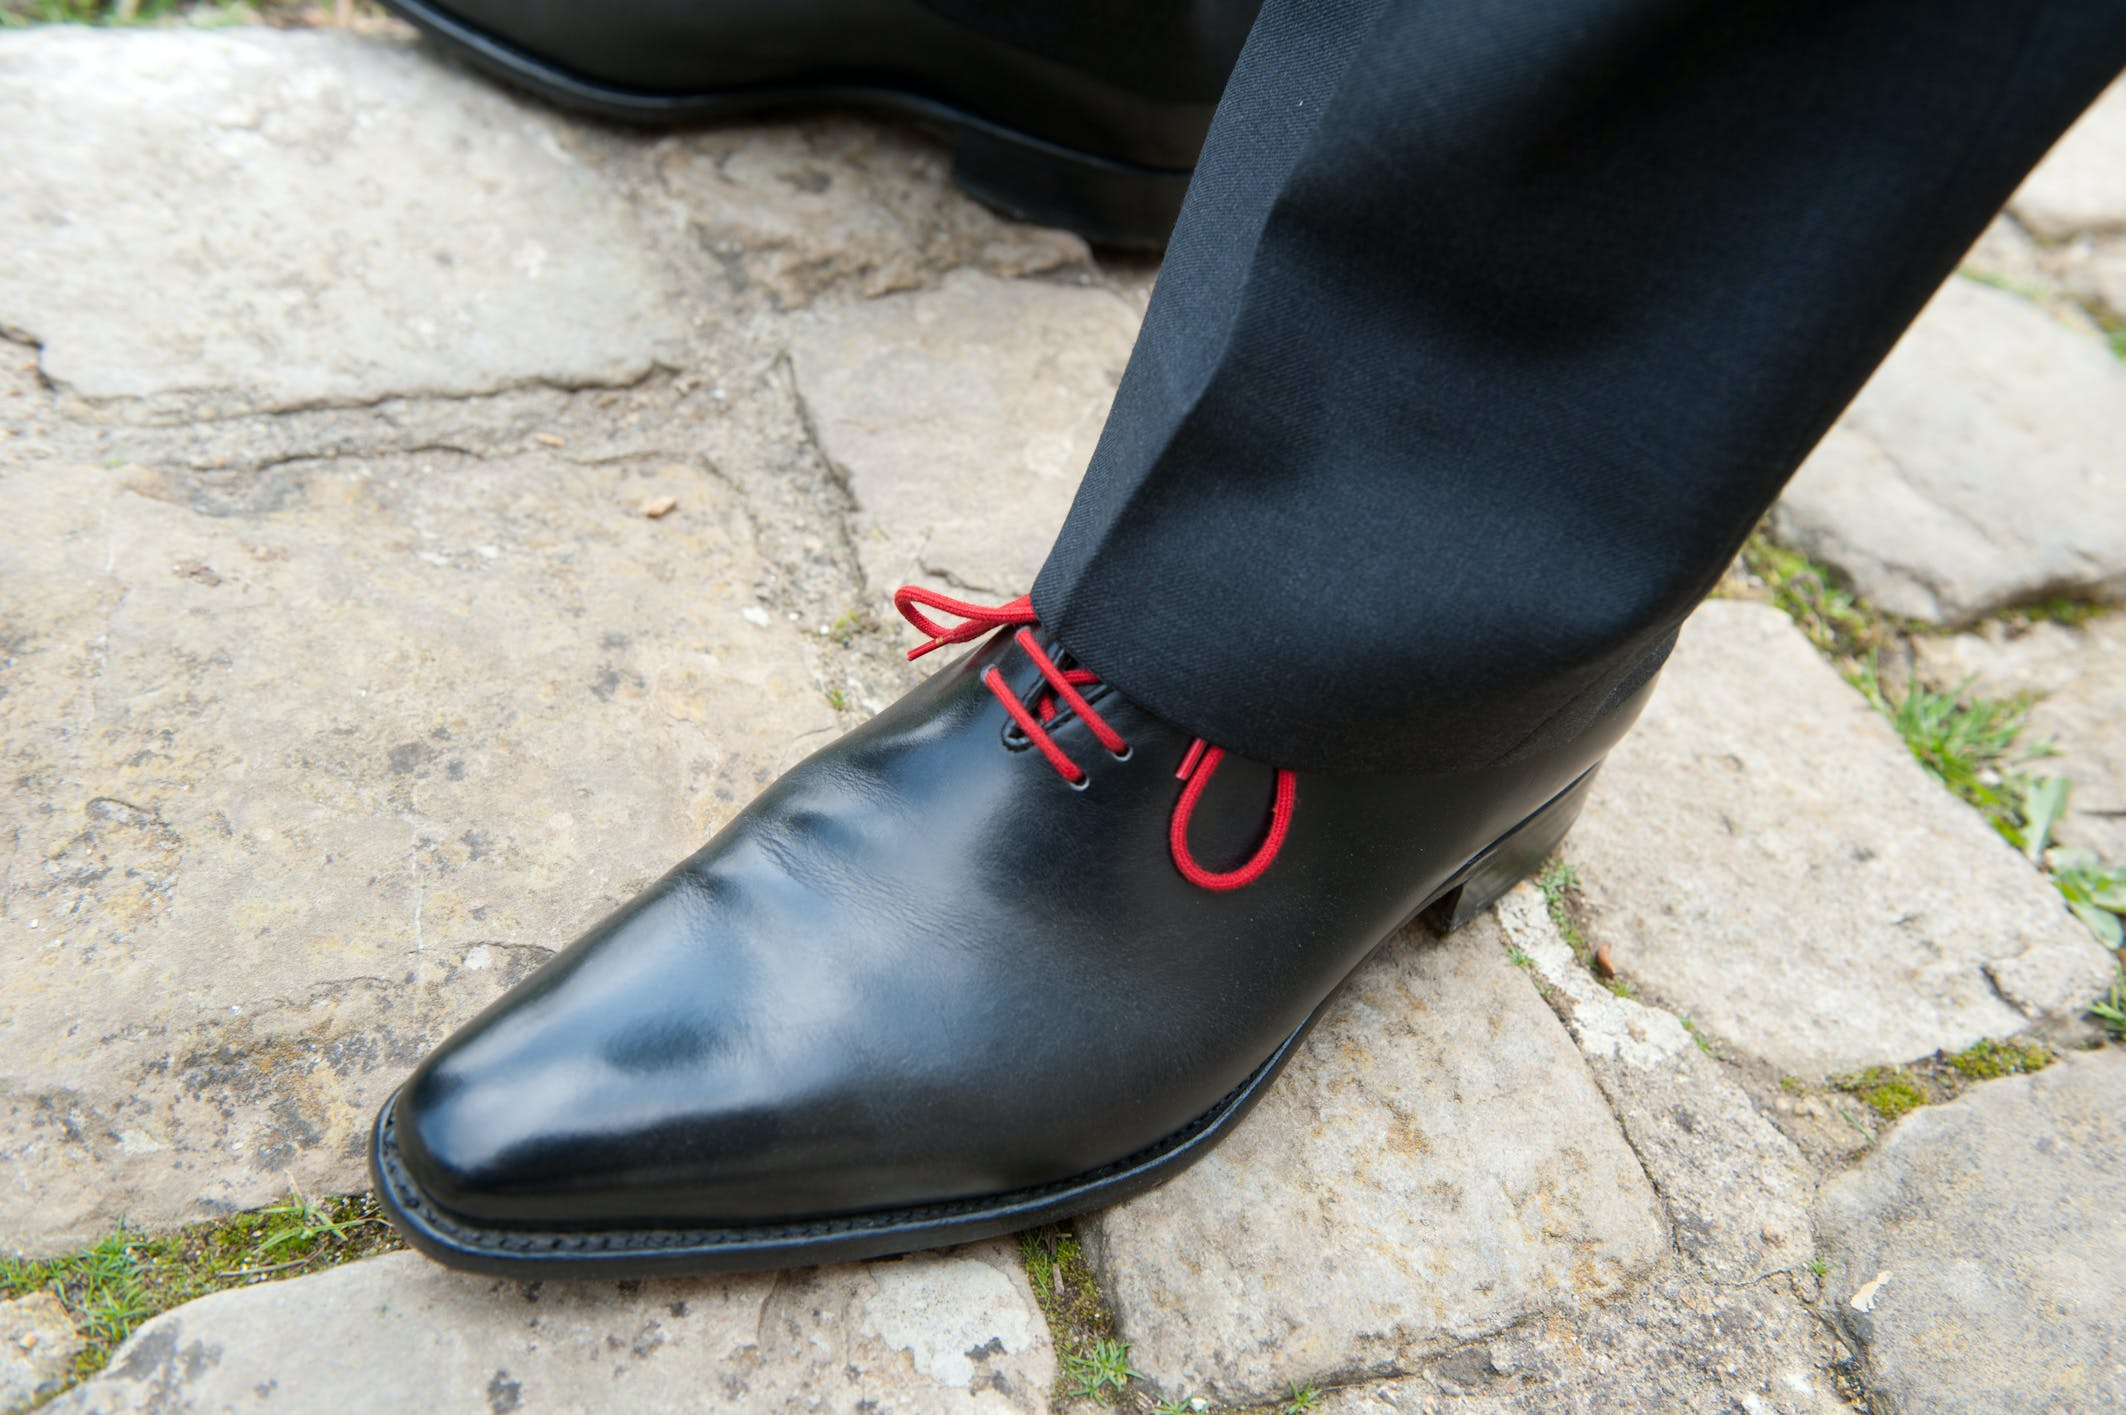 Person Wearing Black Leather Dress Shoes